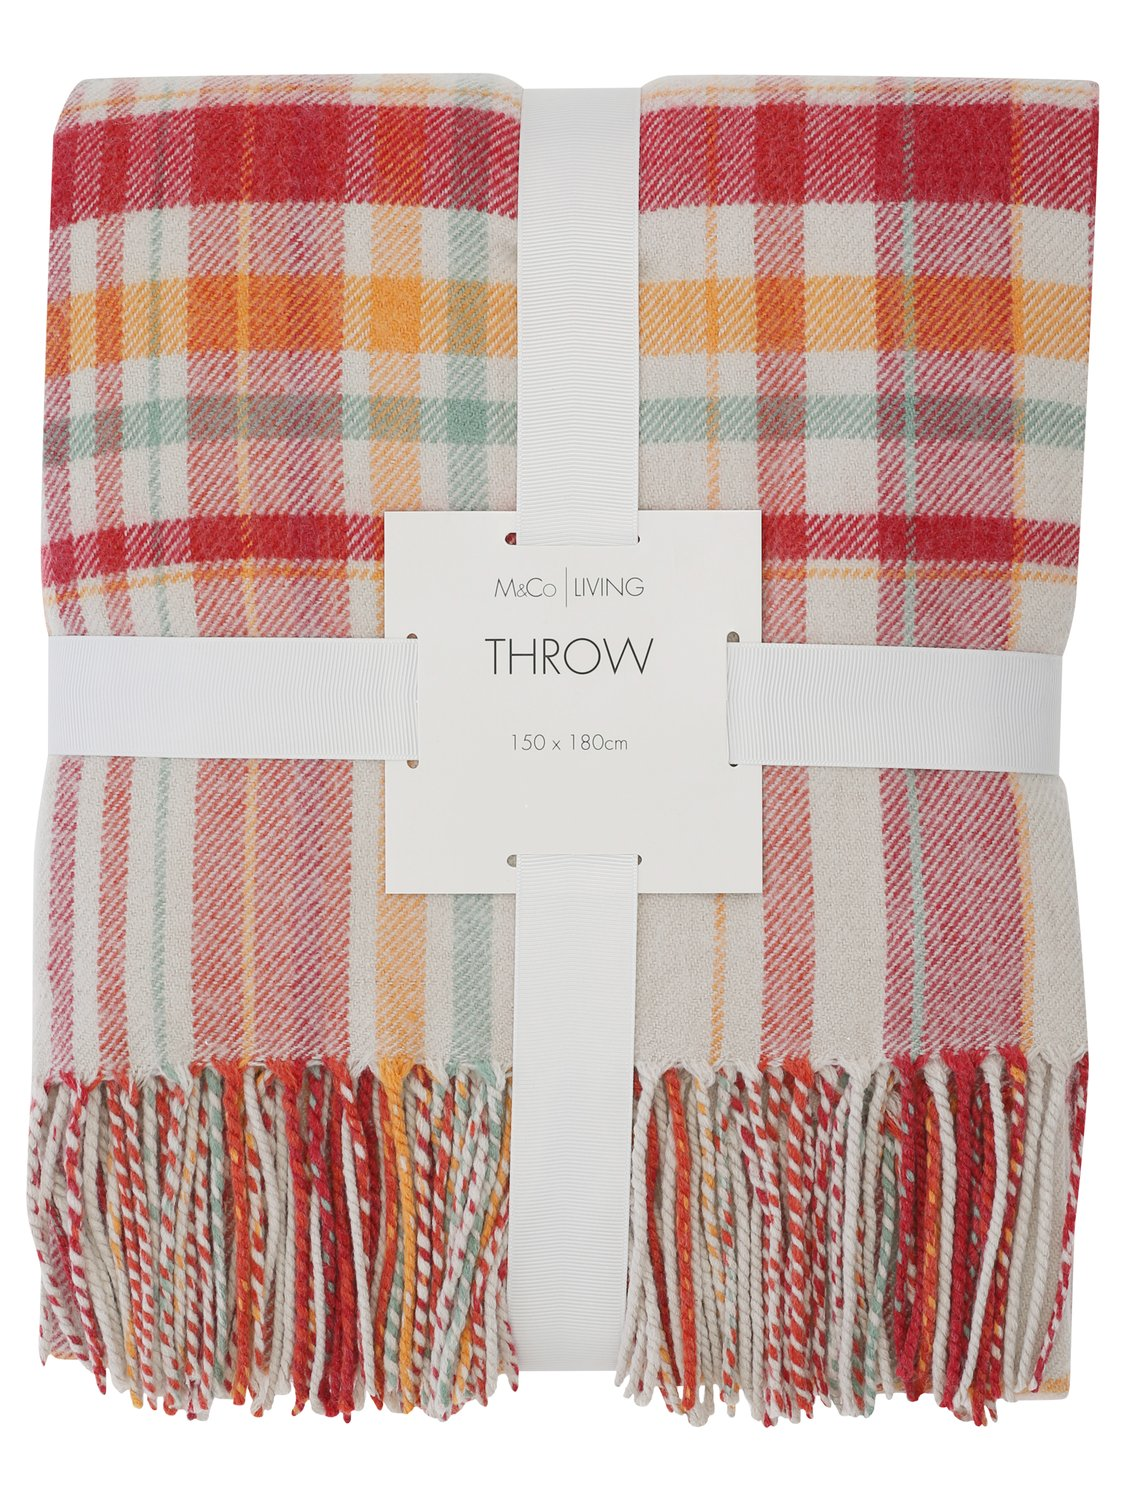 Image of Home checked pattern tartan blanket throw with tassels - Terracotta